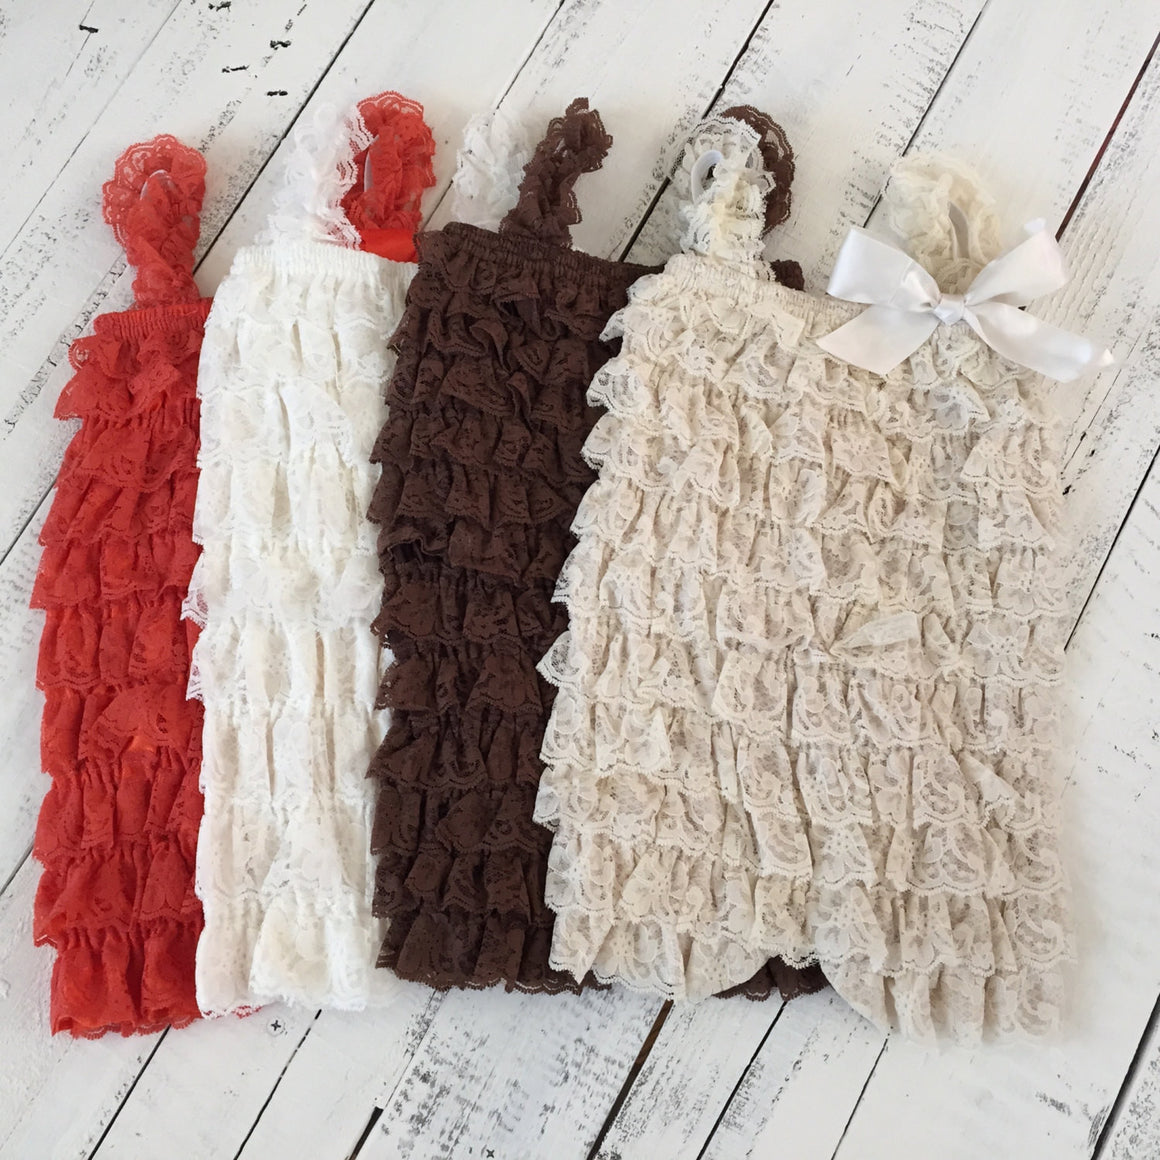 Lace Petti Romper - Embellished Orange Ivory Brown Champagne romper and matching headband